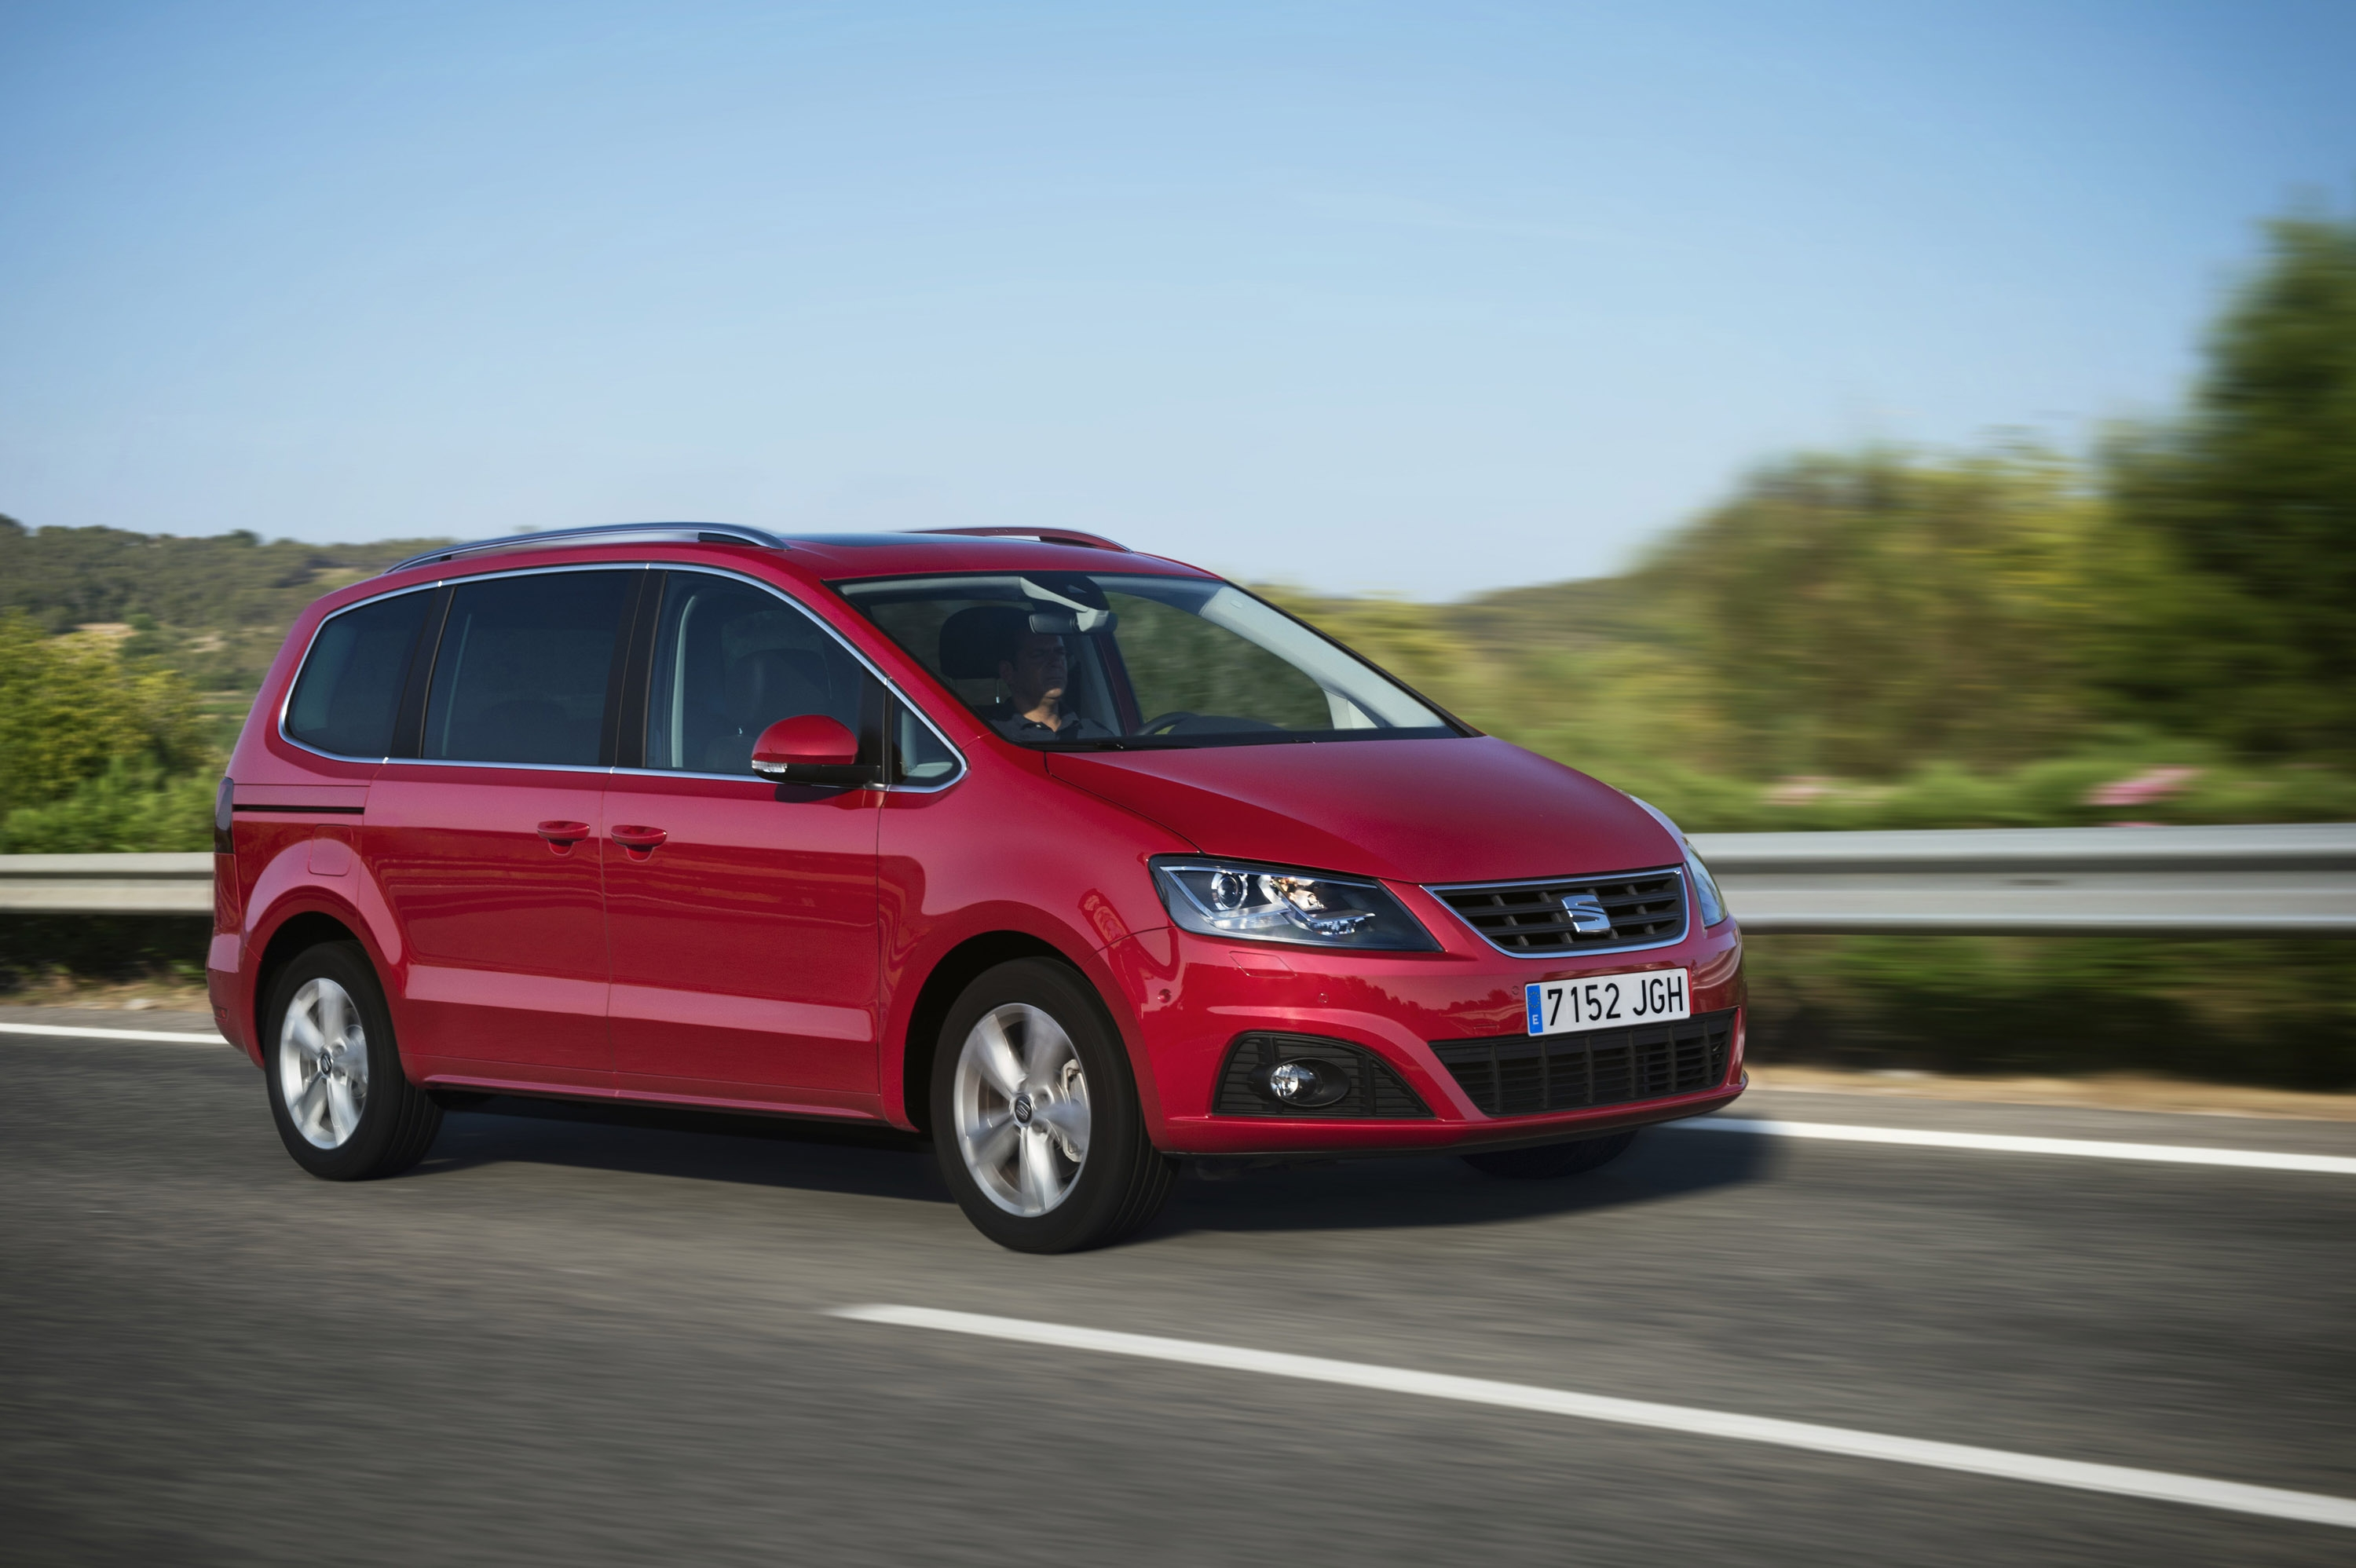 2016 Seat Alhambra thumbnail photo 92689